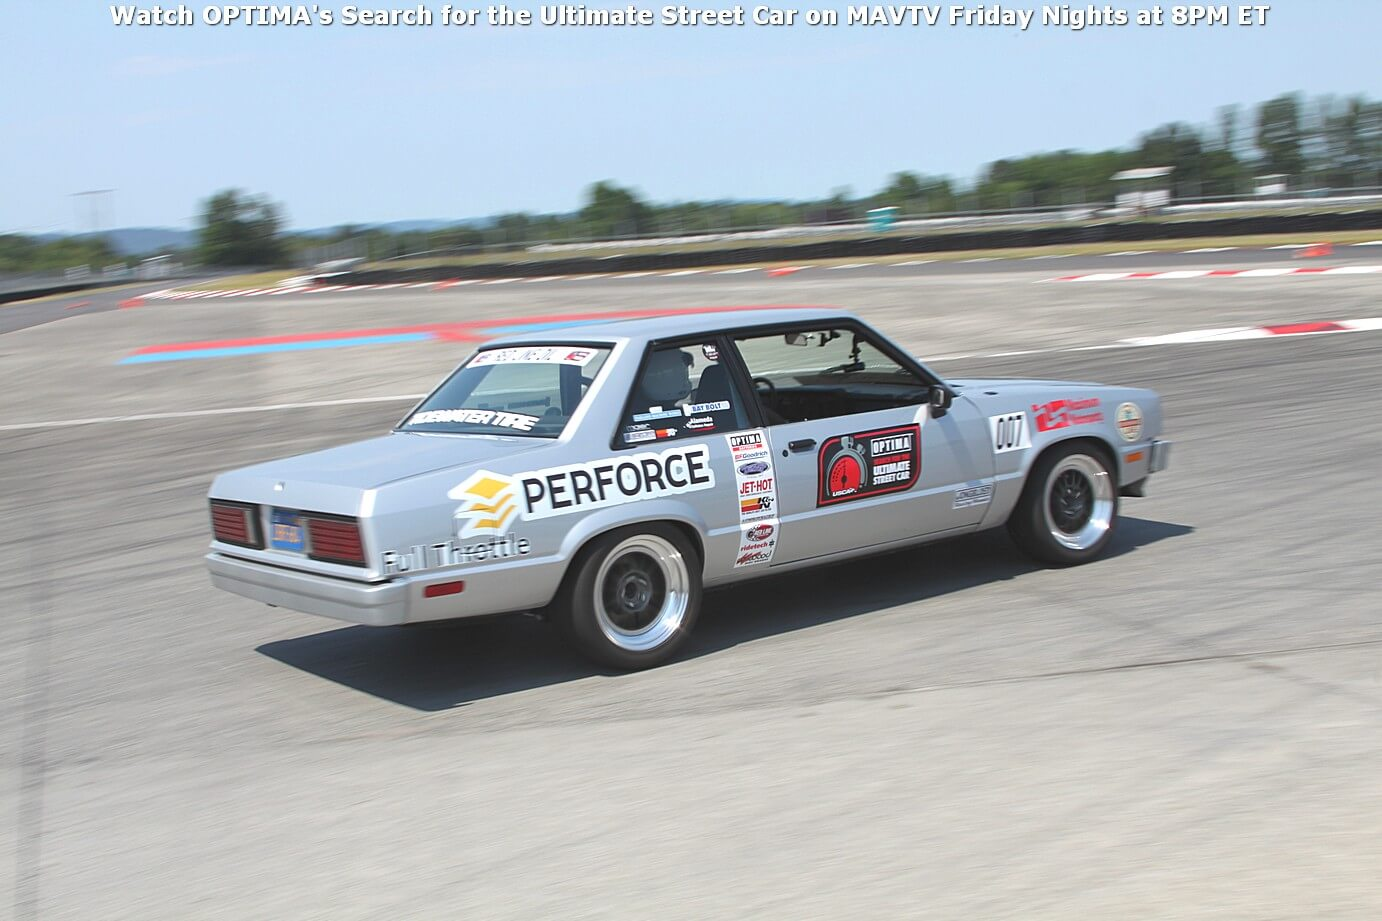 Martin-Pond-1980-Ford-Fairmont-USCA-Portland-2014_75